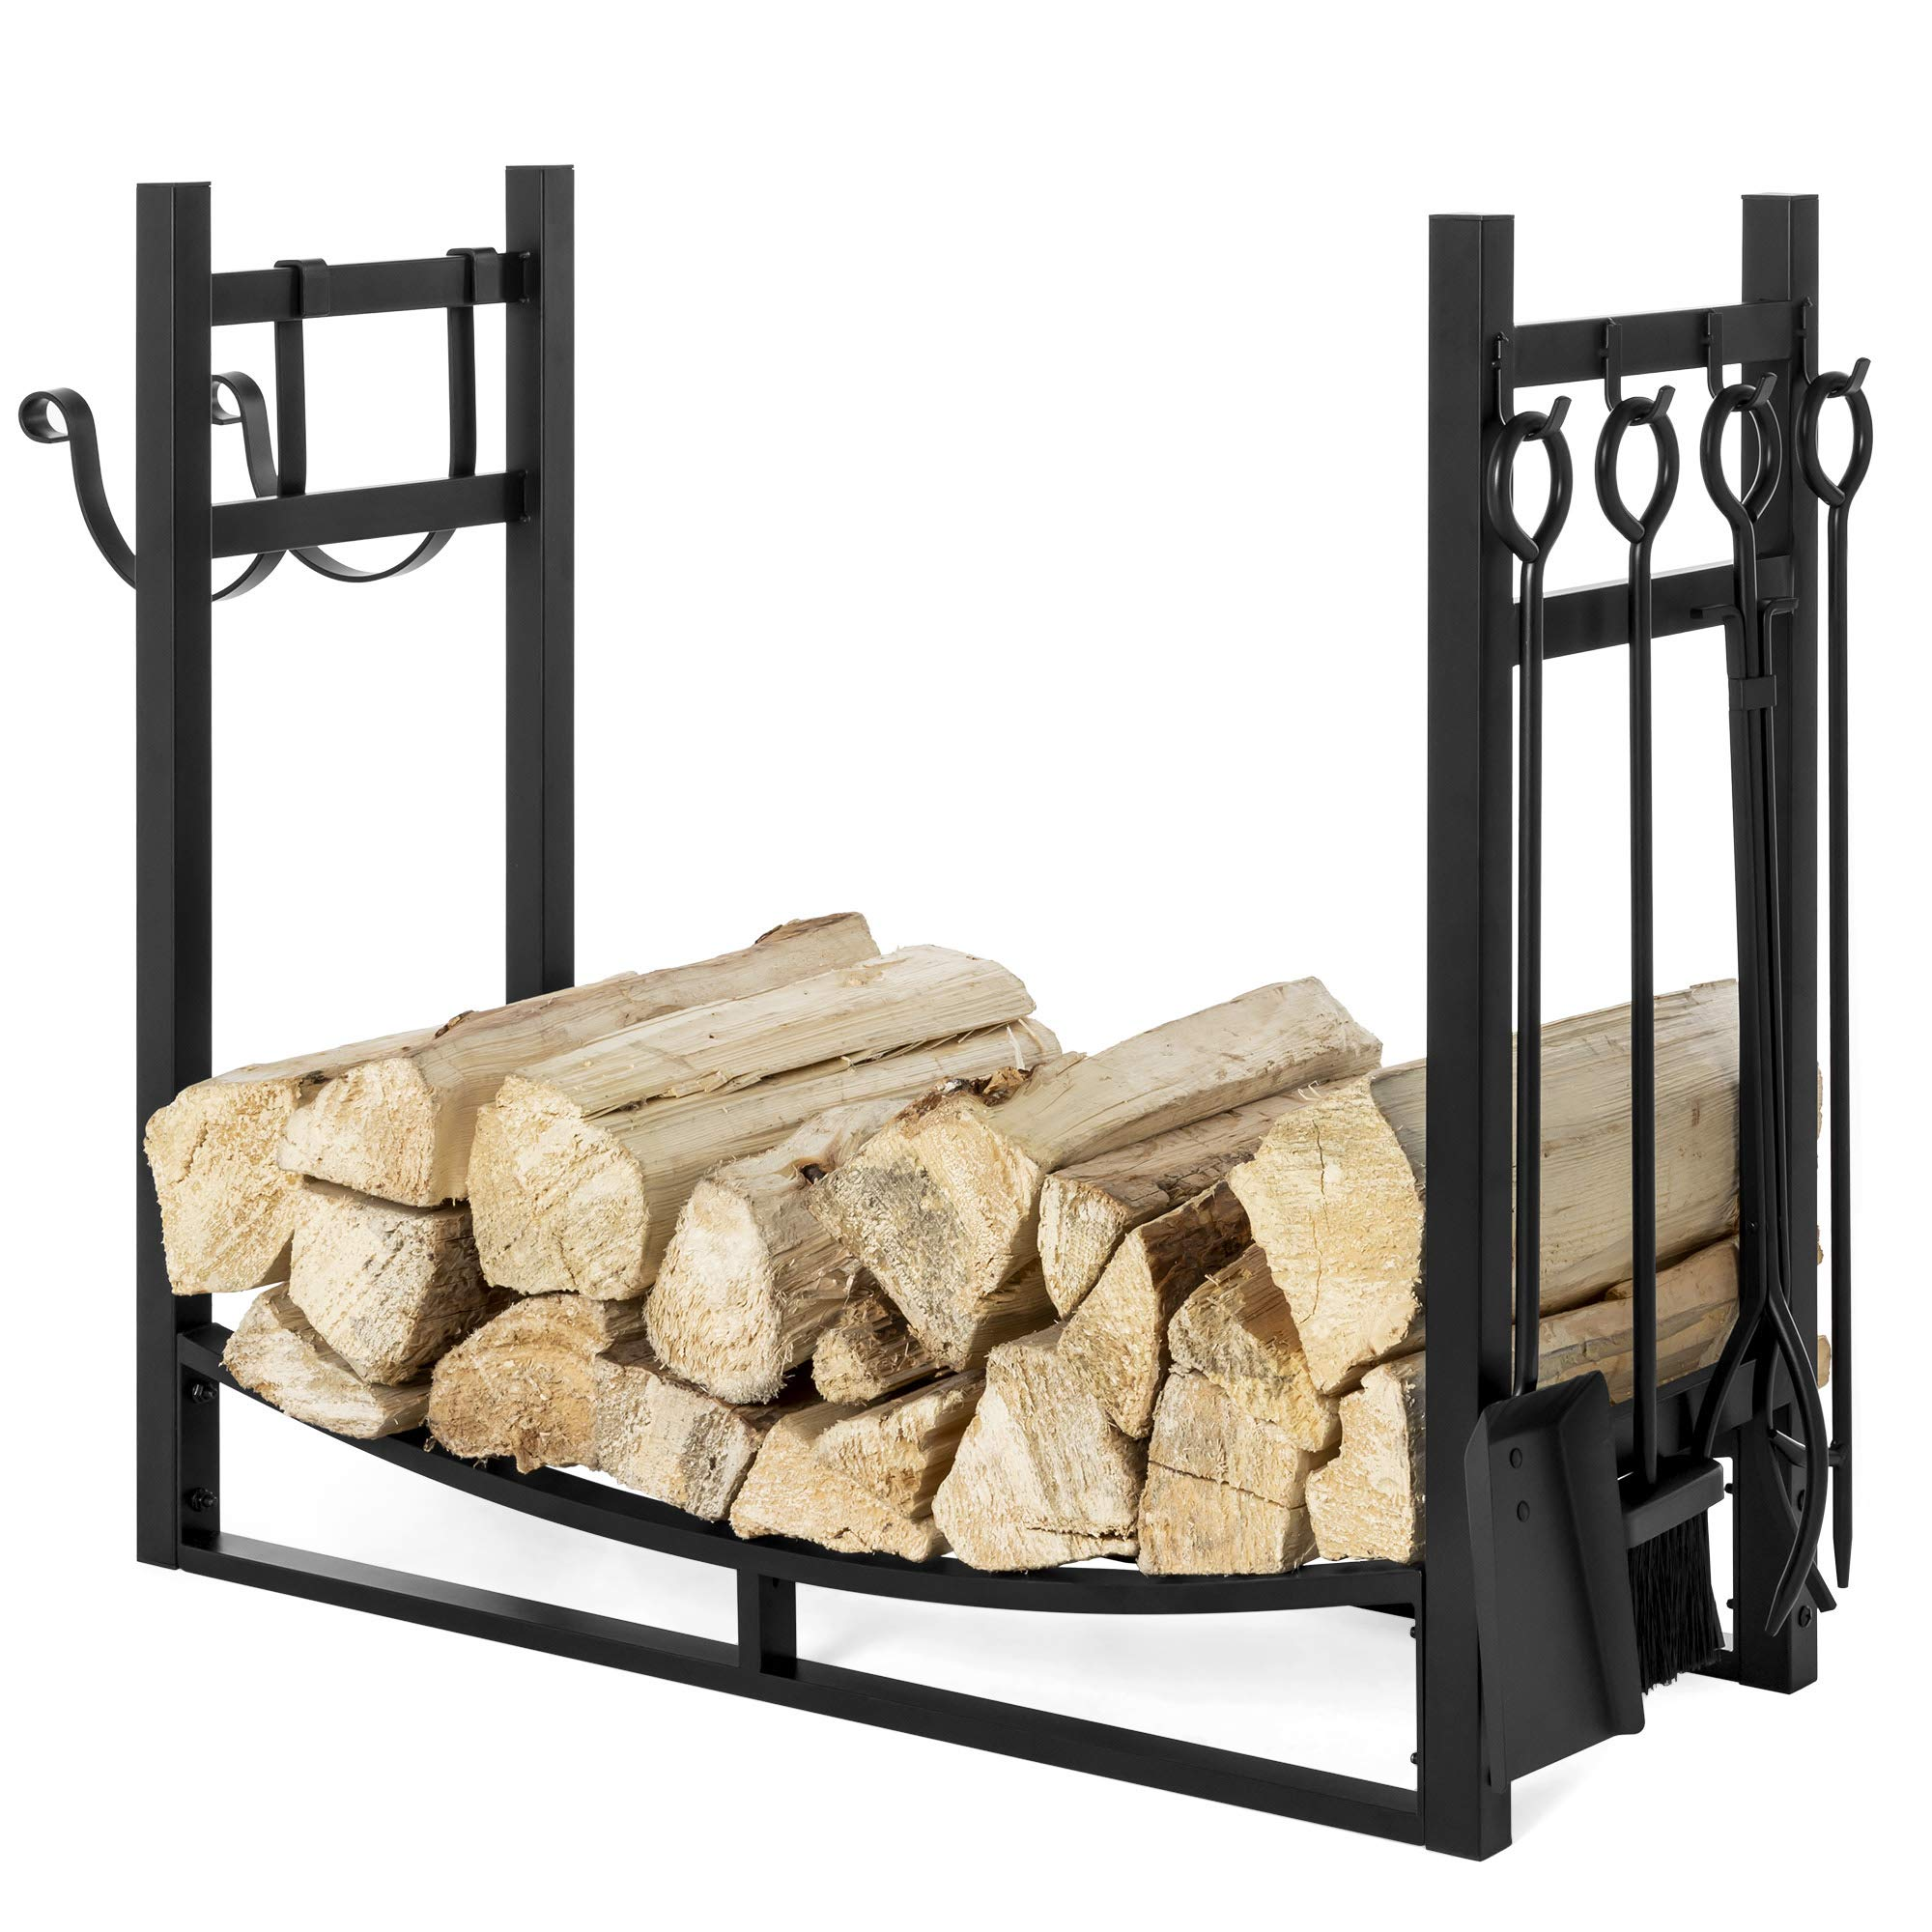 Best Choice Products 43.5in Steel Firewood Log Storage Rack Accessory for Fire Pit, Fireplace w/Kindling Holder by Best Choice Products